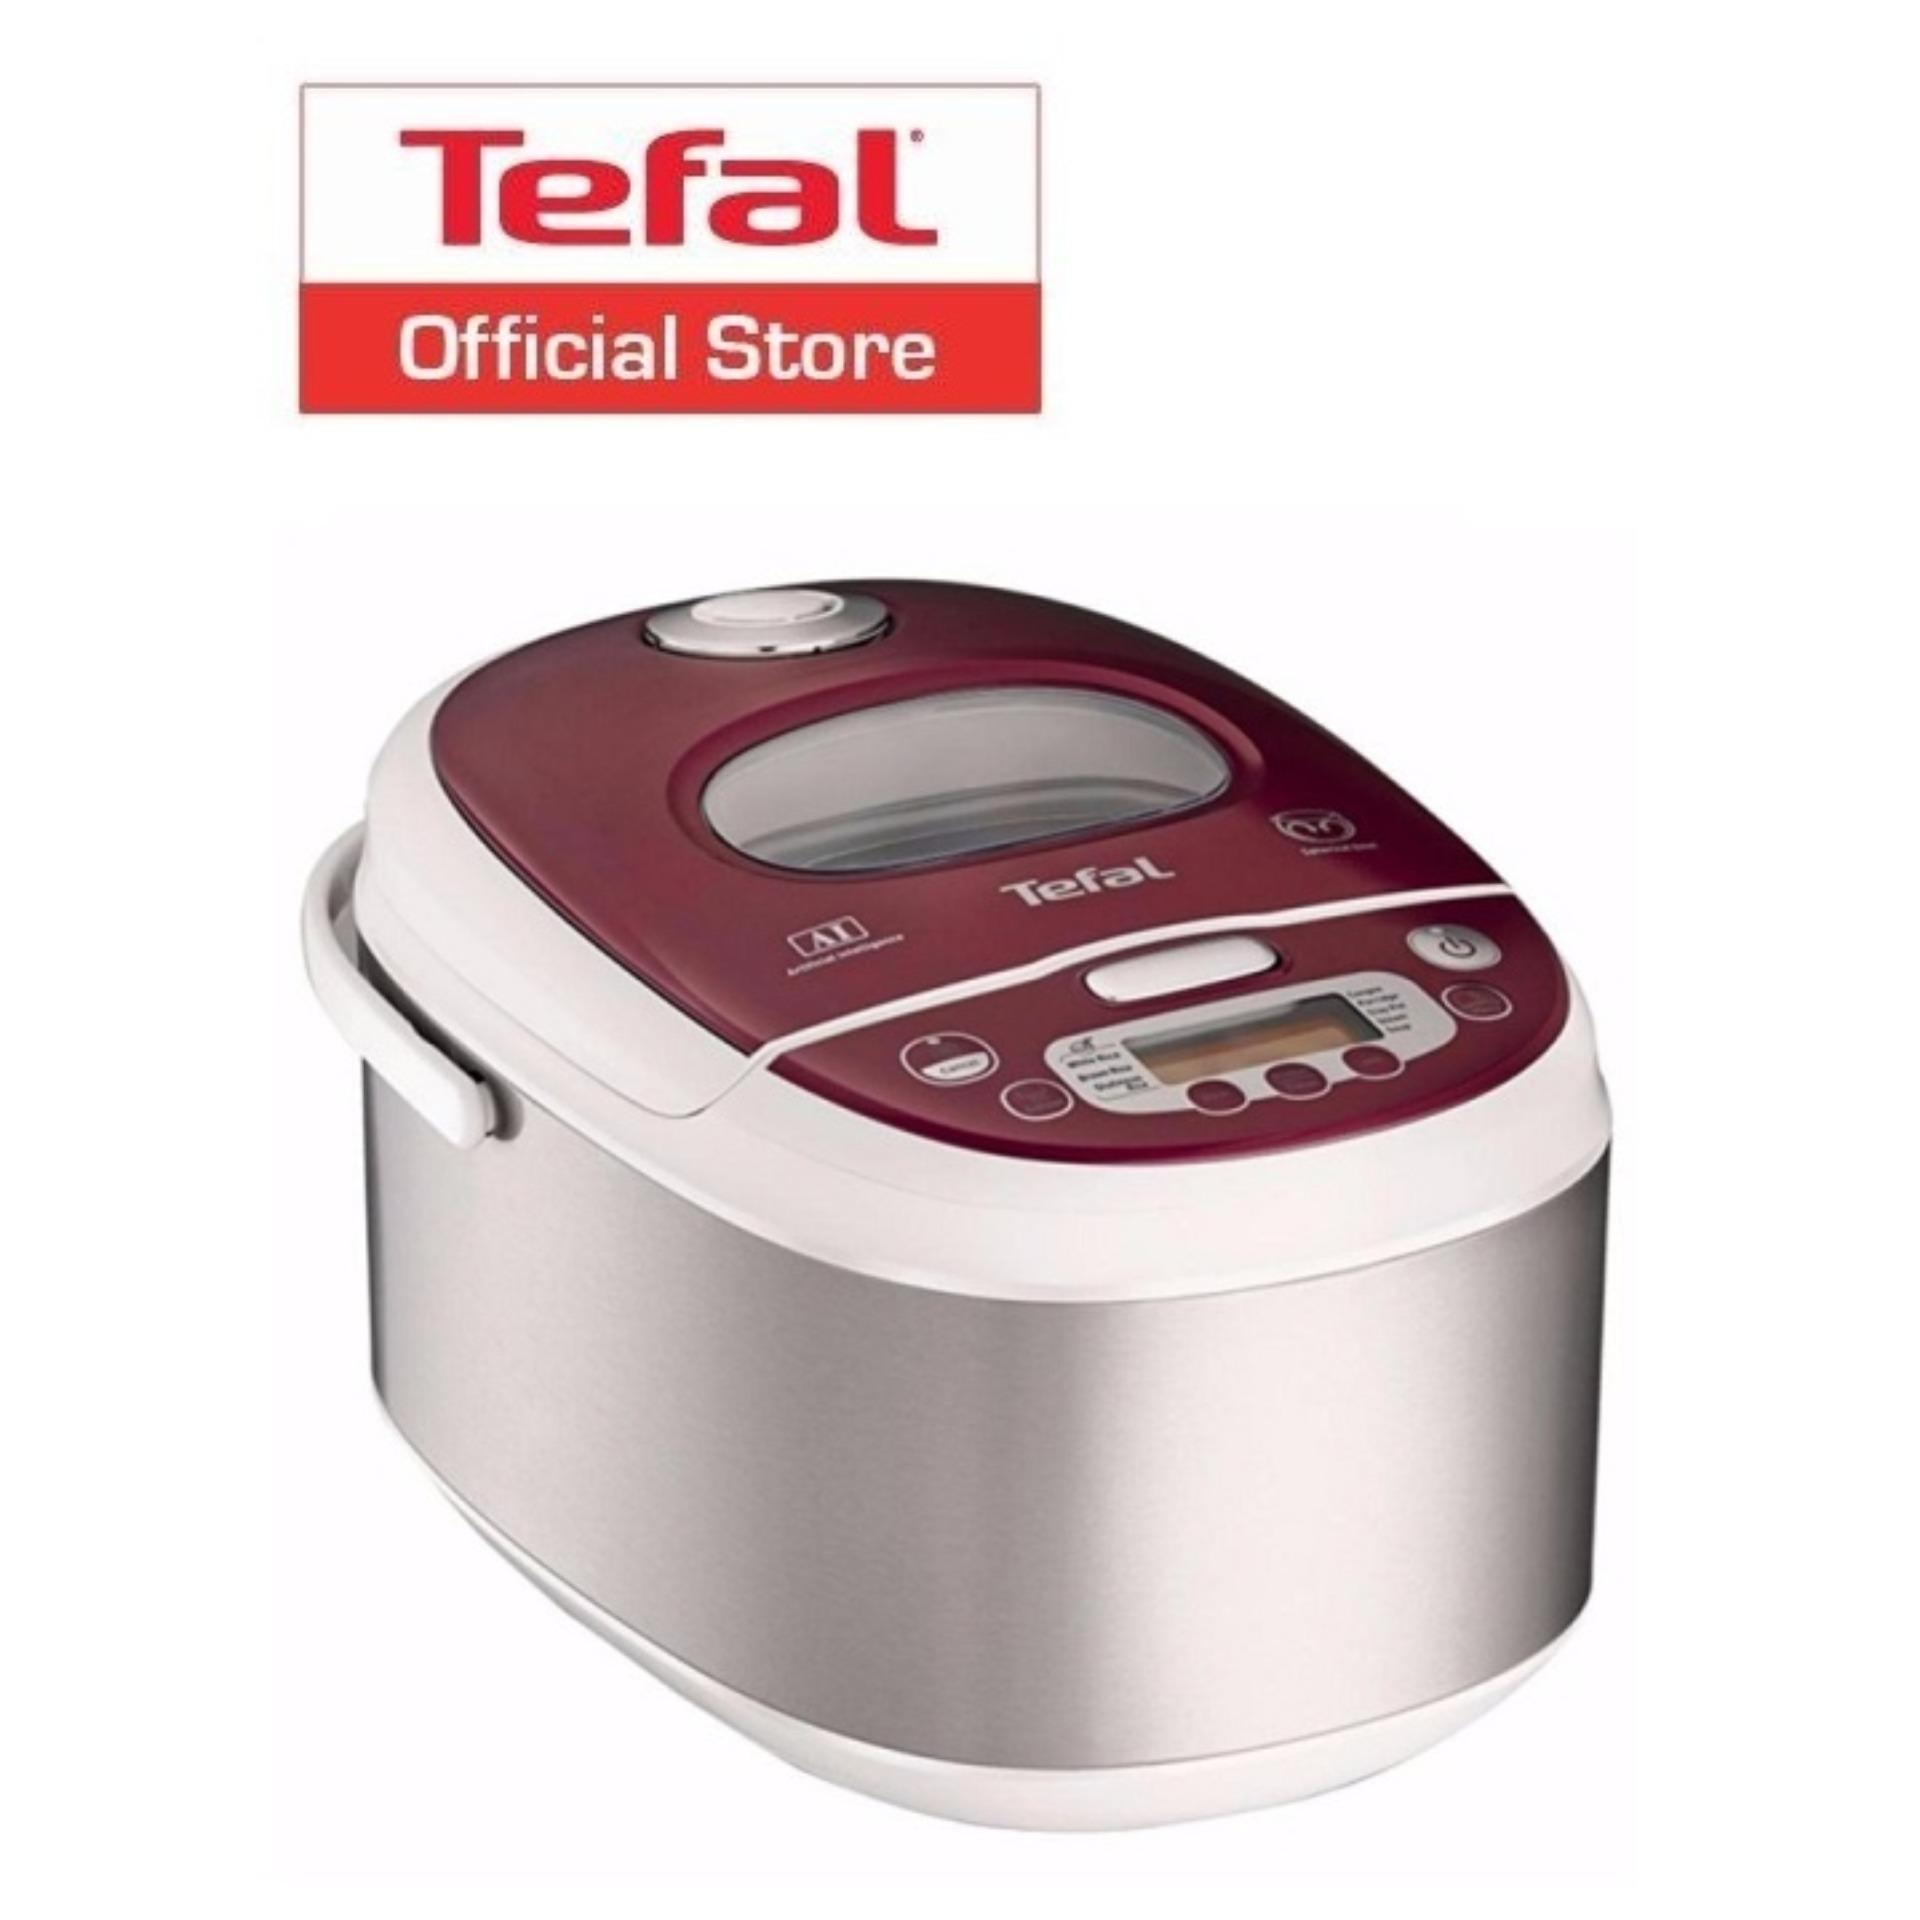 Retail Tefal Advanced 10 Program Fuzzy Logic Spherical Pot Rice Cooker 1 8L Rk8105